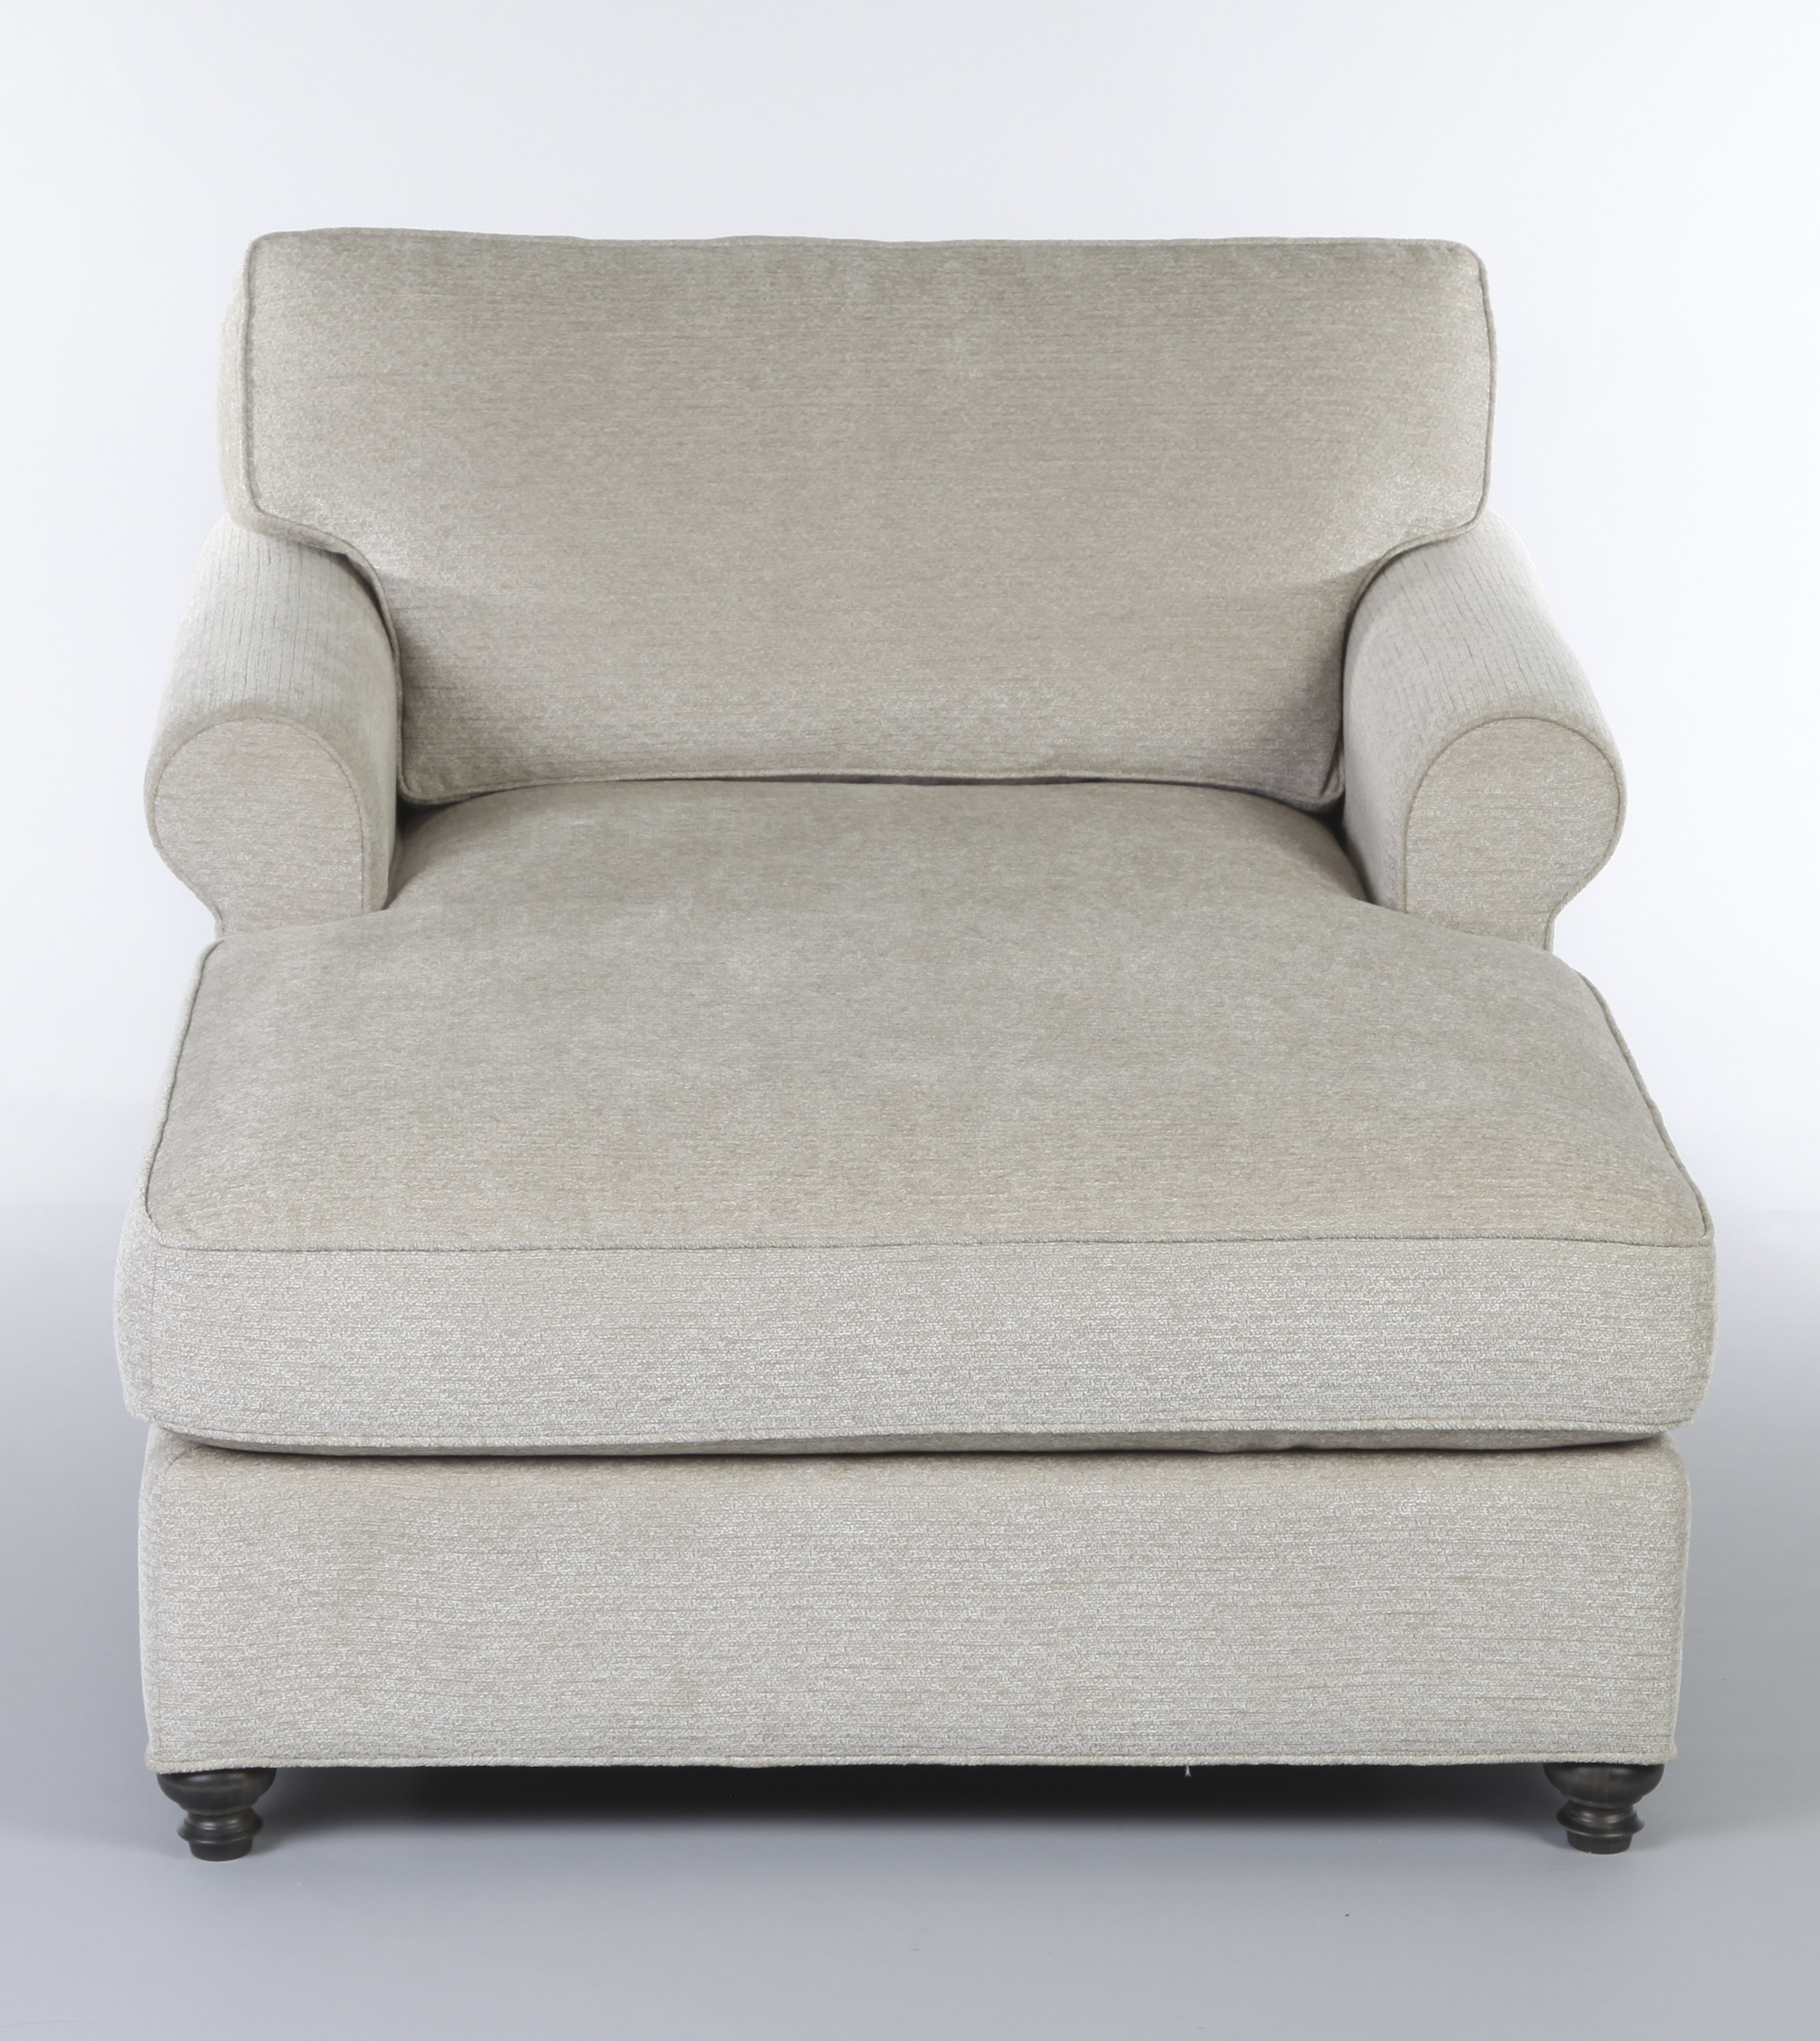 8400 Series Chaise Lounge Rolled Turned - 01.jpg